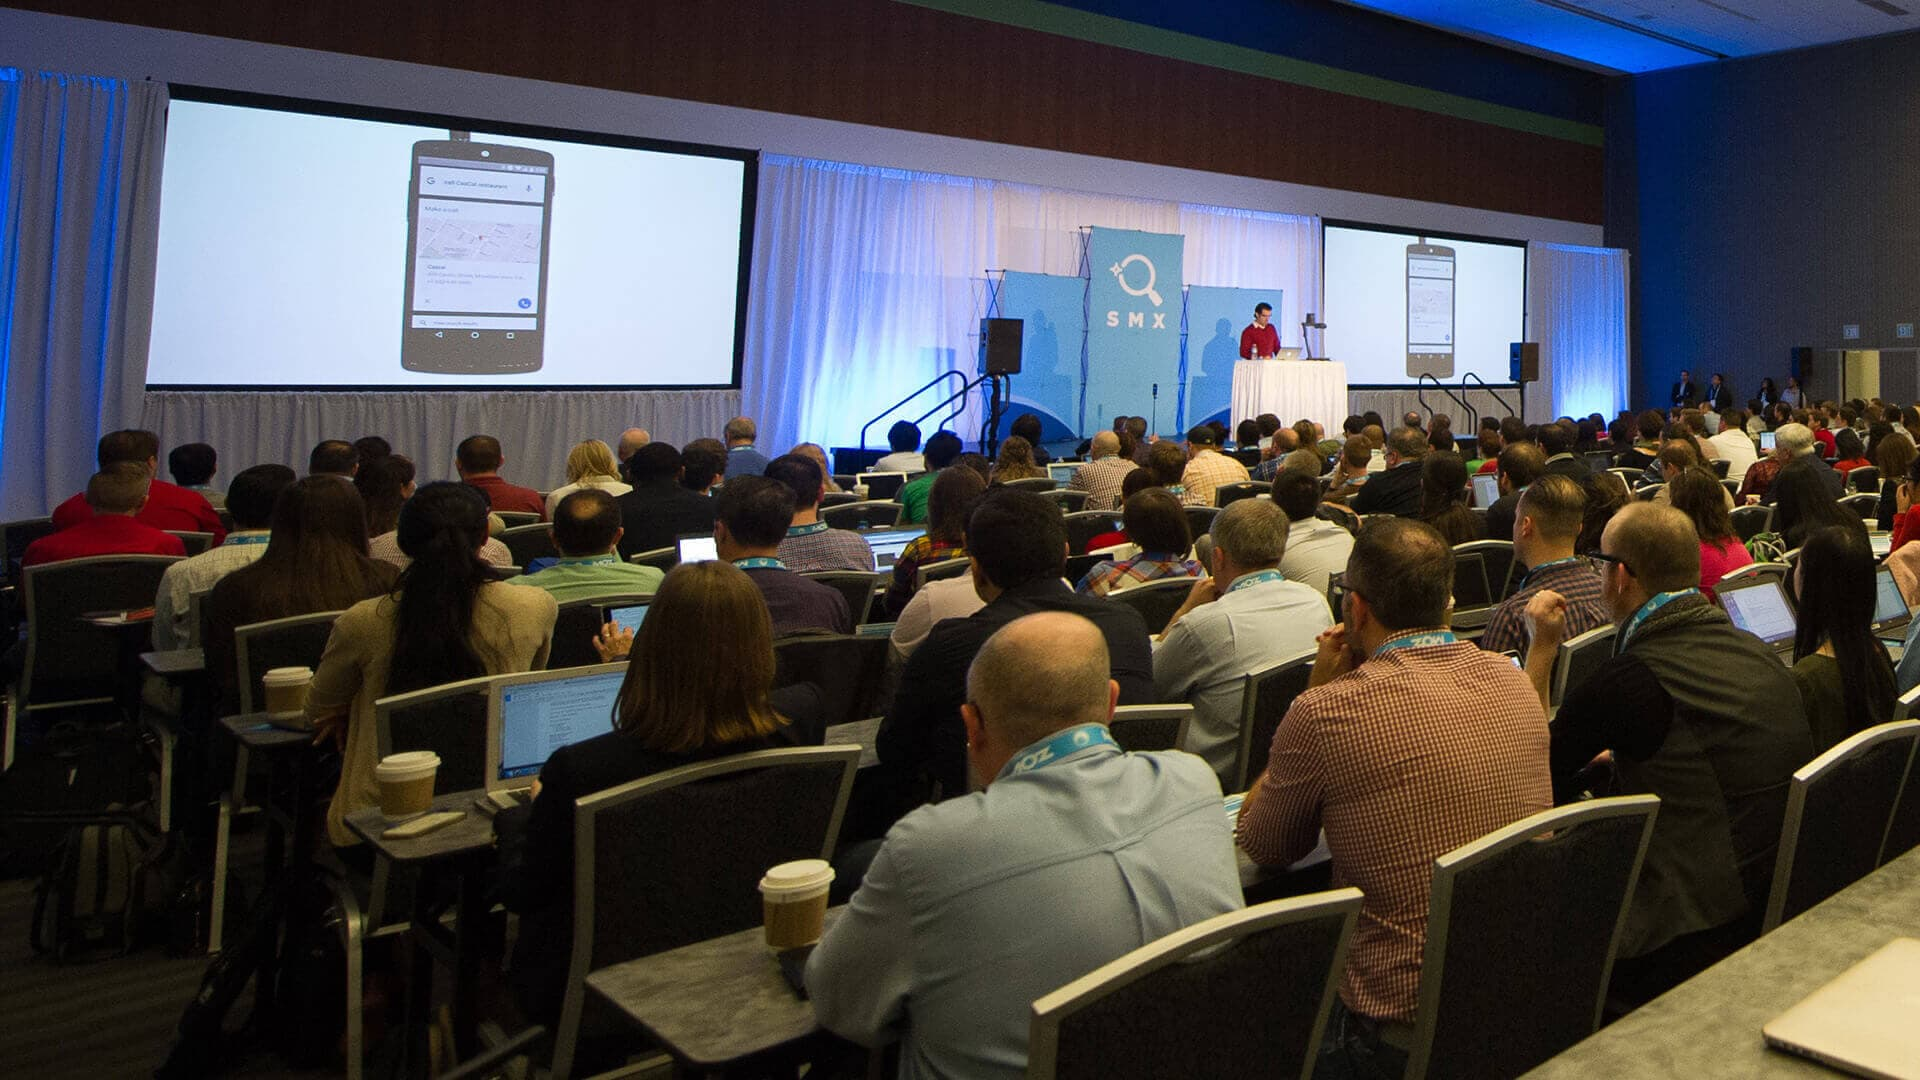 Search Marketing Expo (SMX) - best tech conferences 2017 - Motioncue